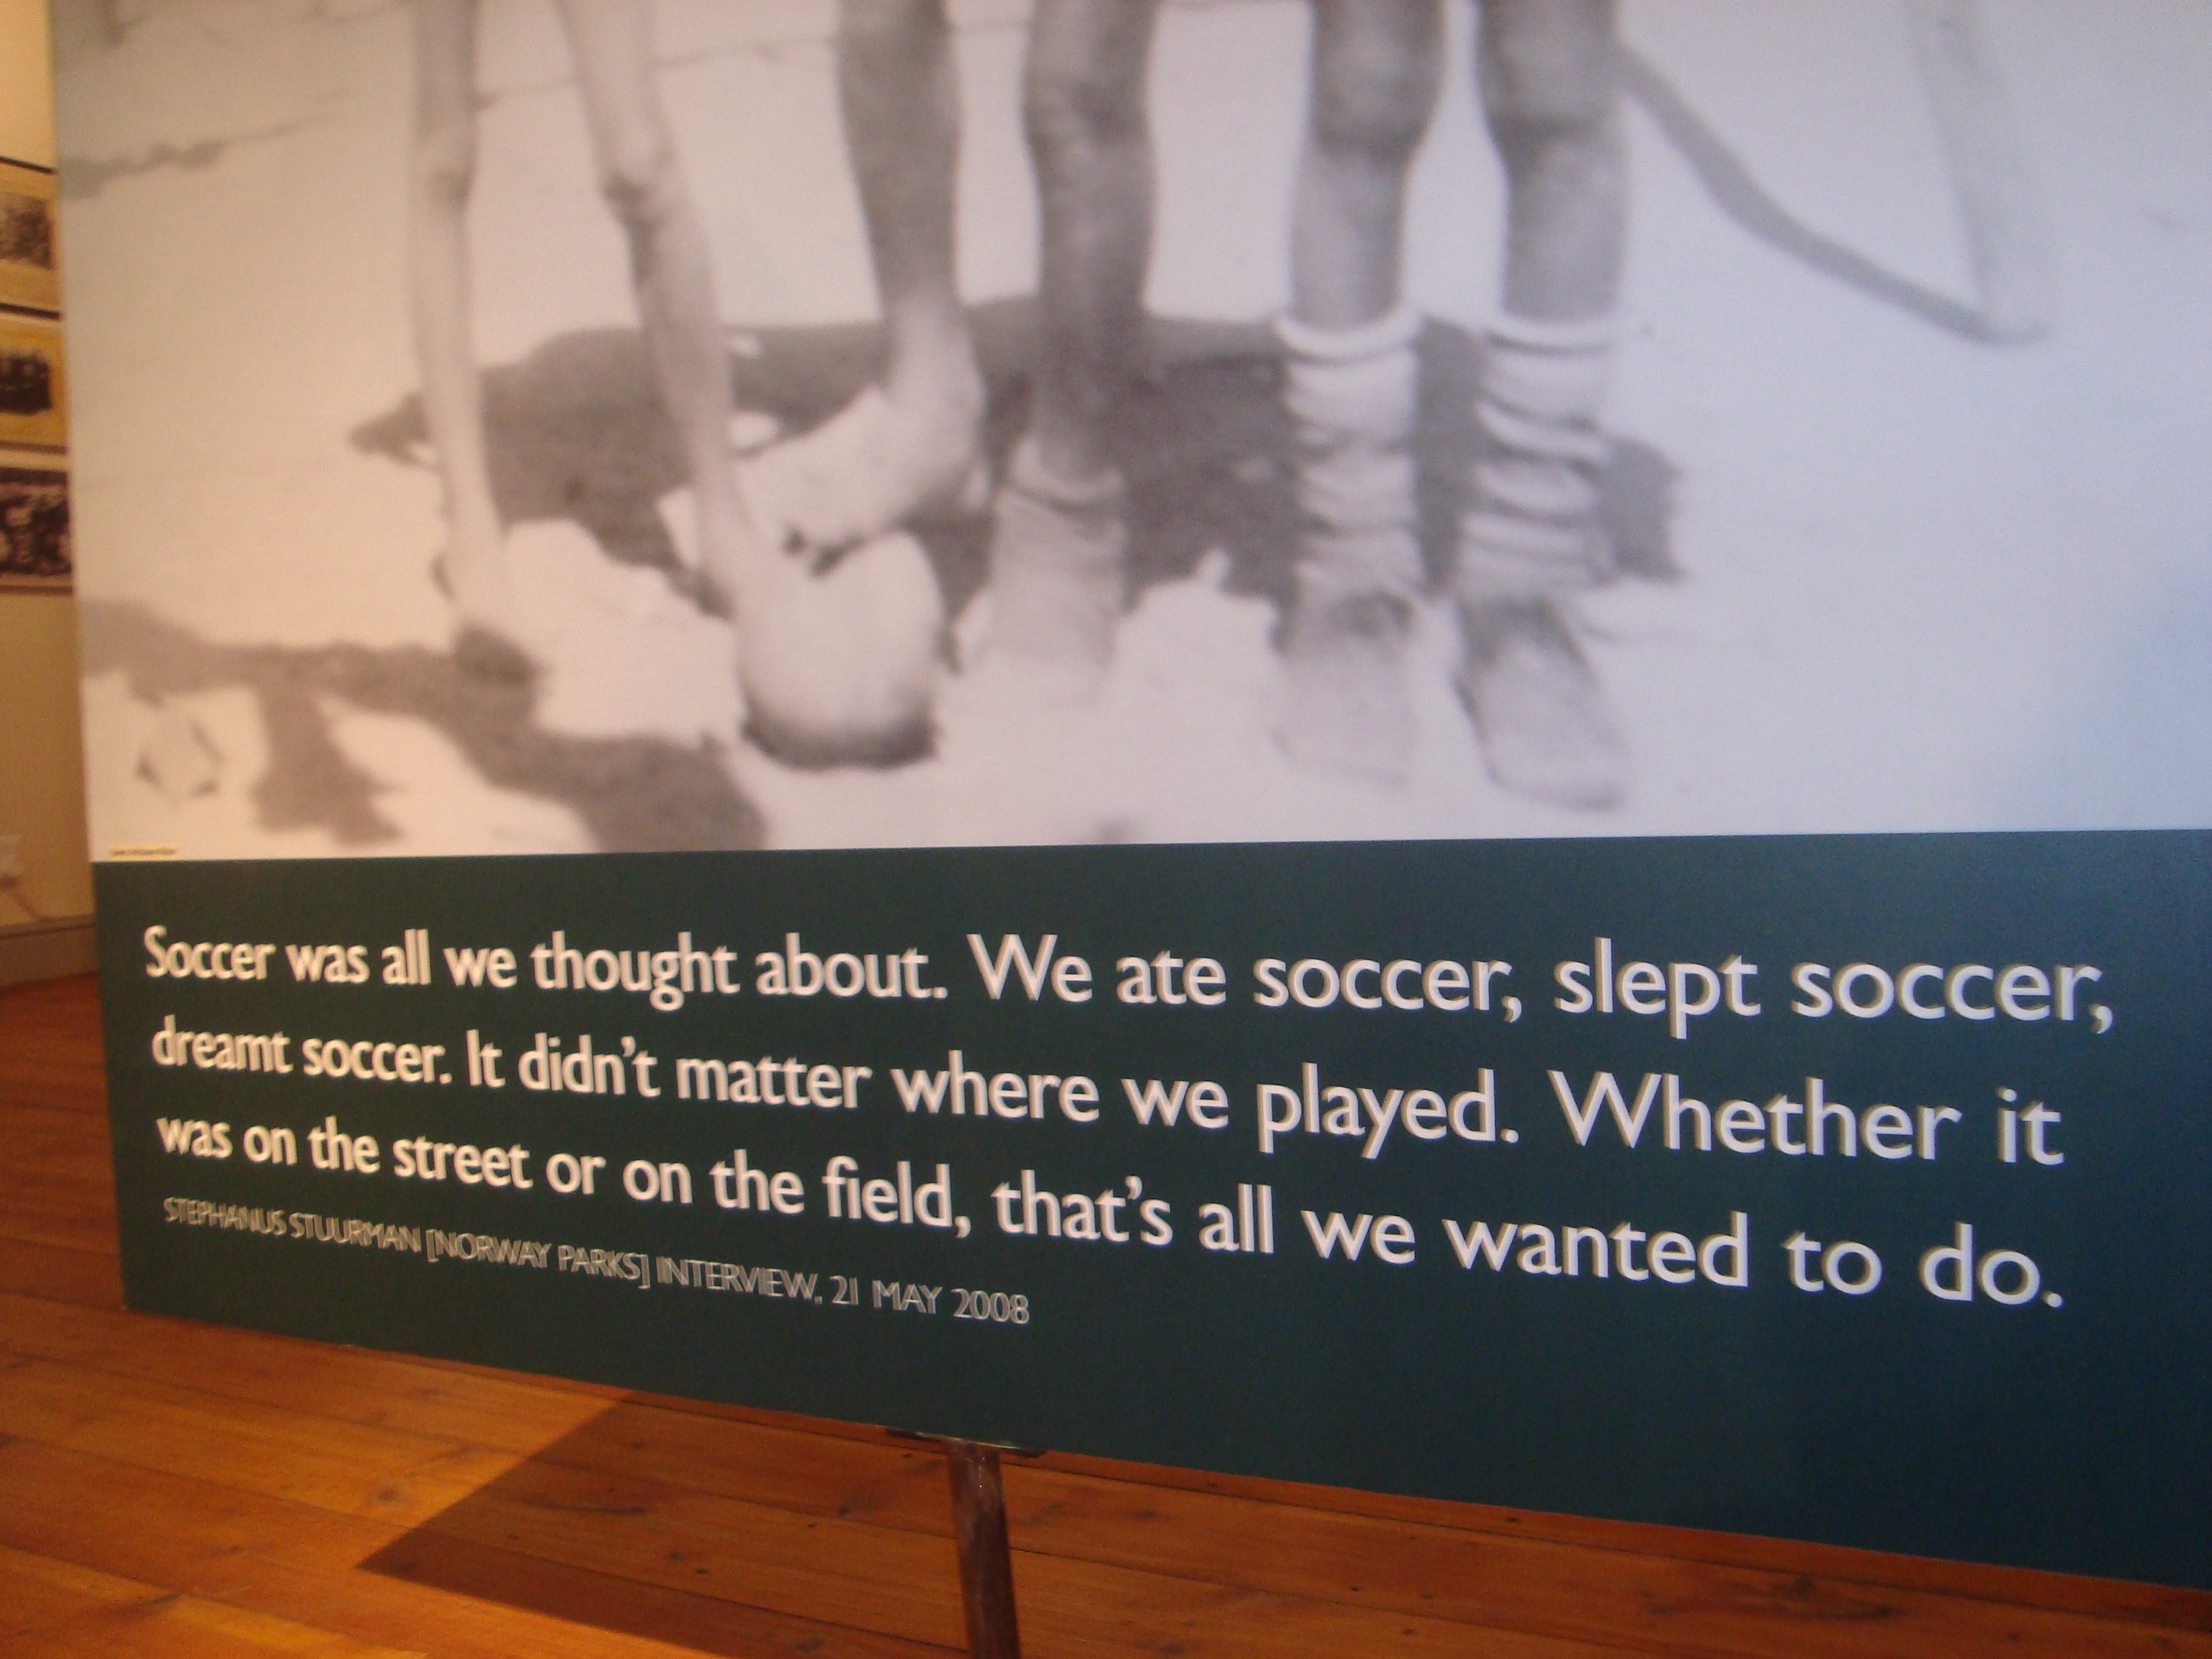 There was a whole exhibit on the influence of football orrrr soccer!